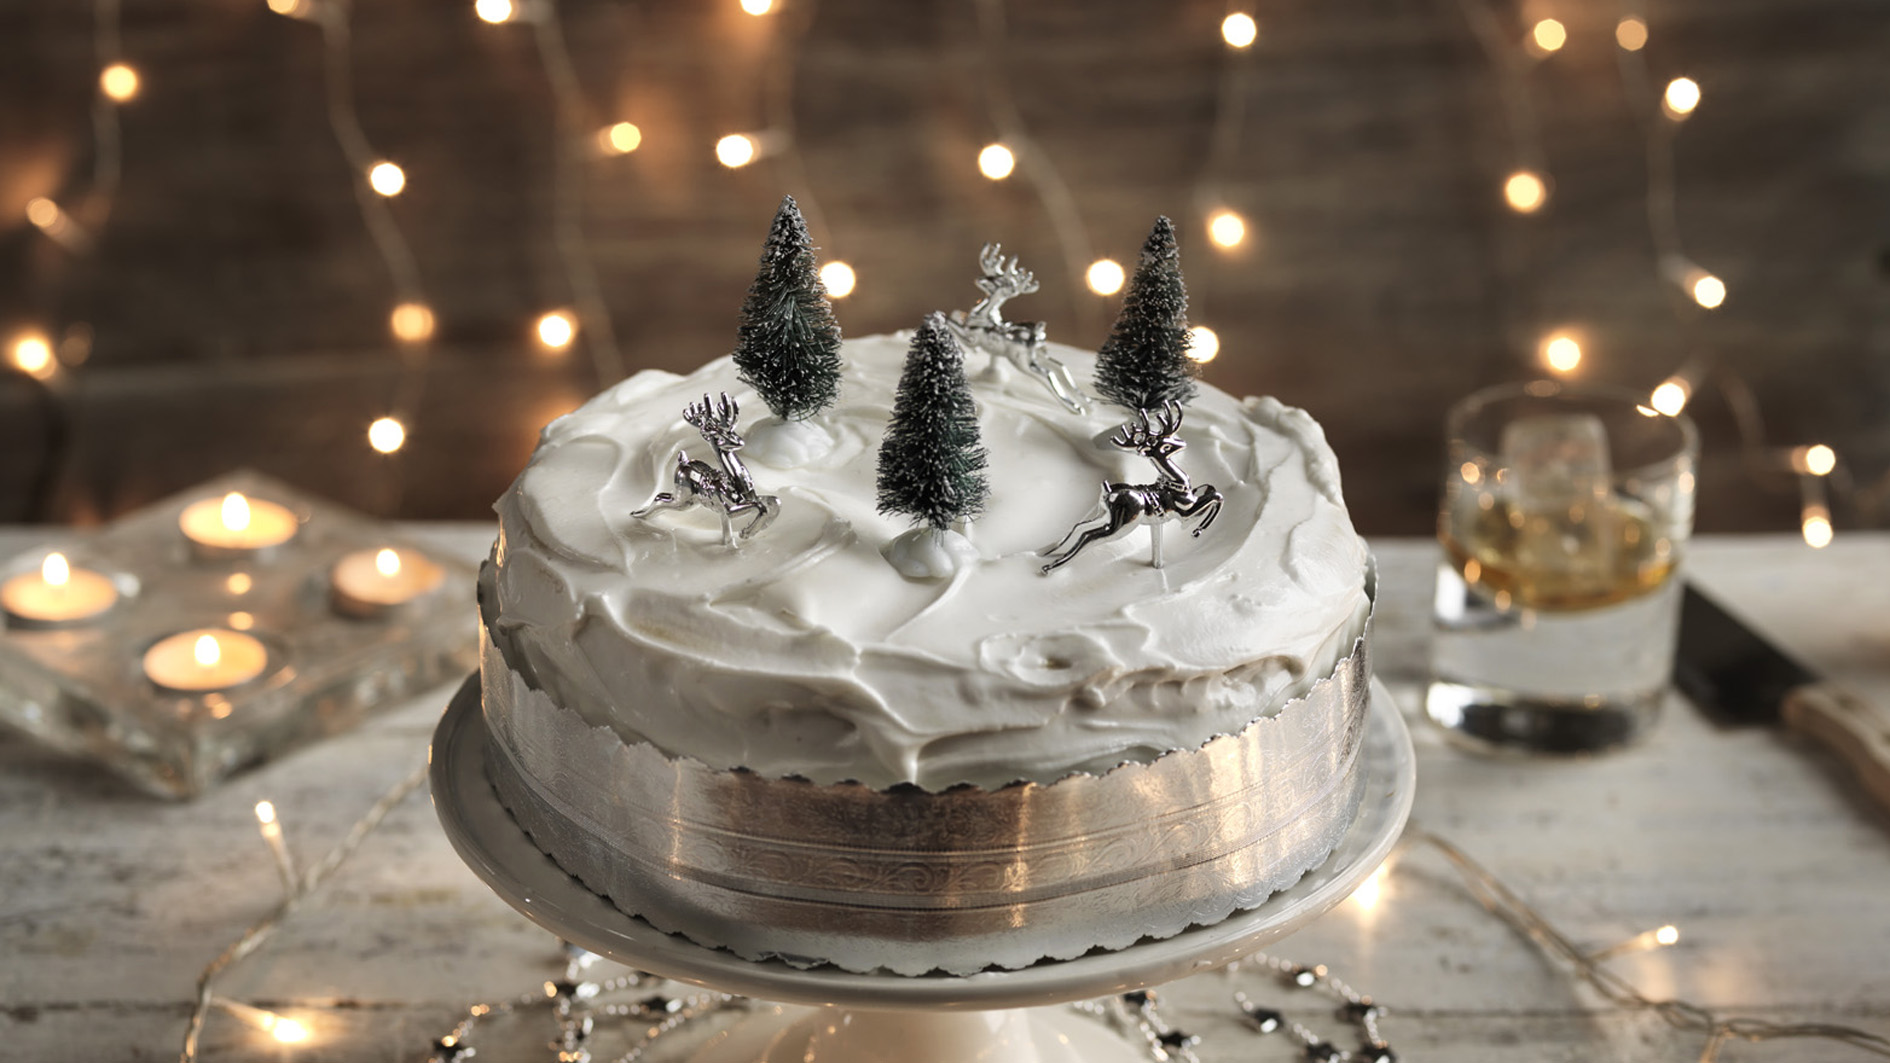 Christmas cake recipe bbc food forumfinder Image collections